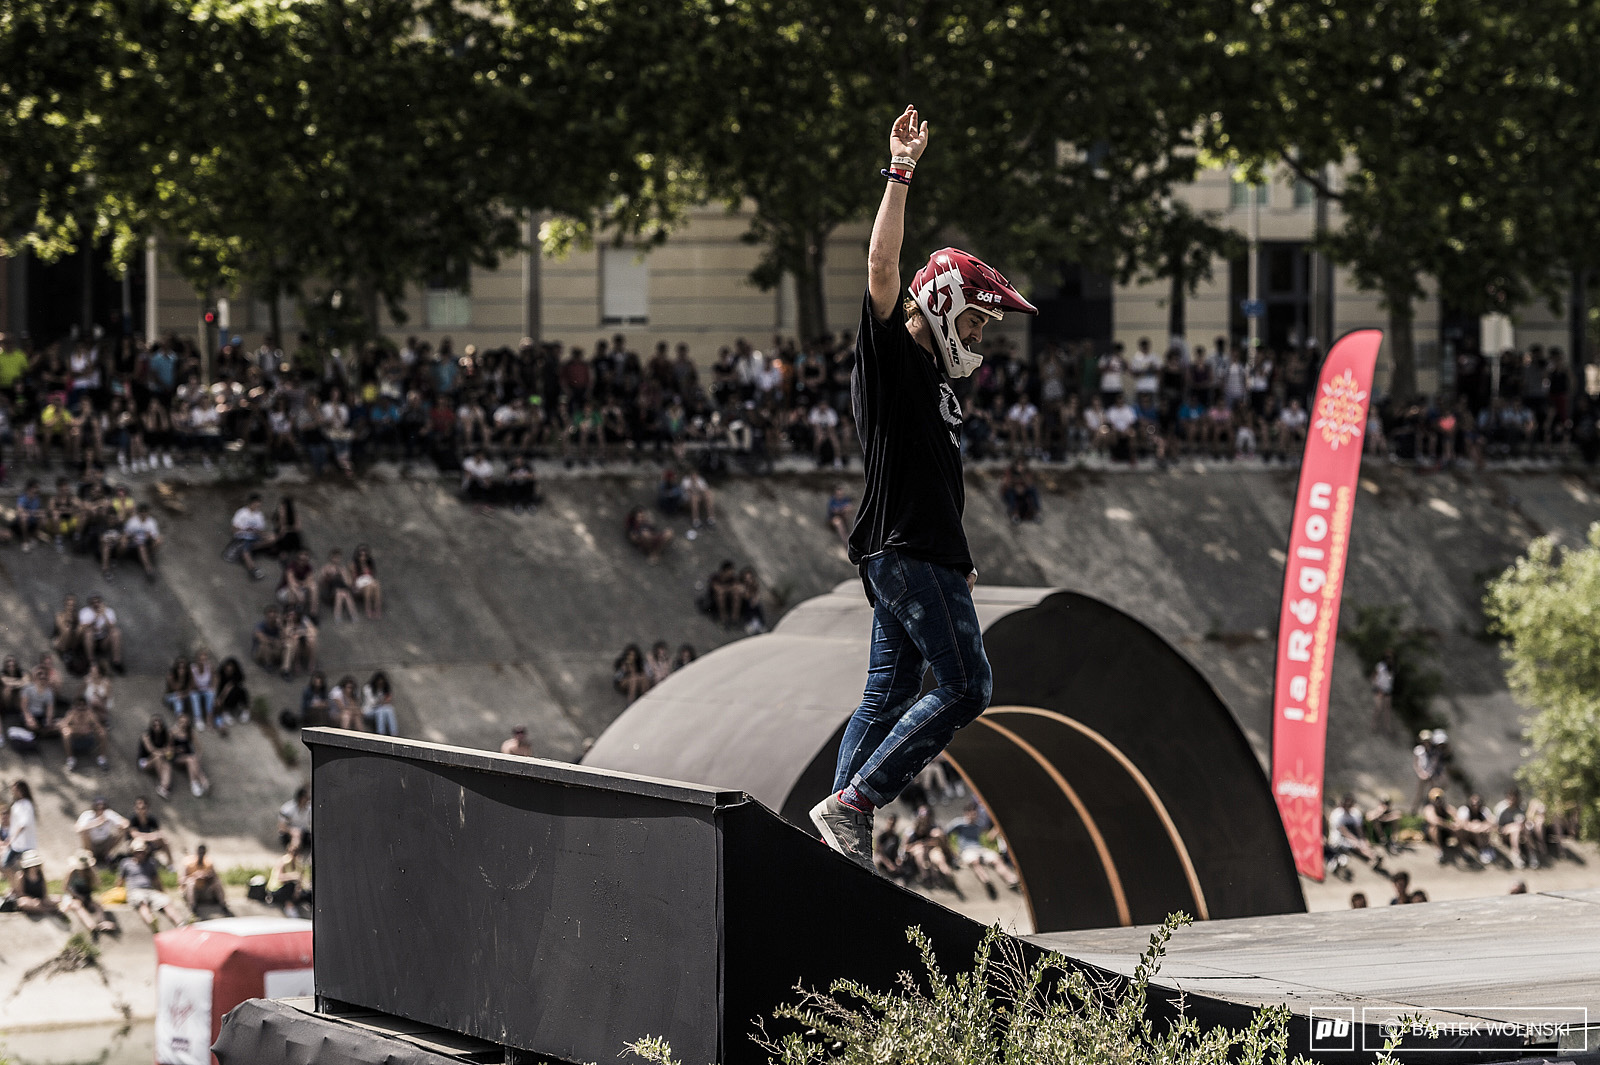 Tomas keeping heads up as the local shredder. 4th place for this crazy Frenchman.